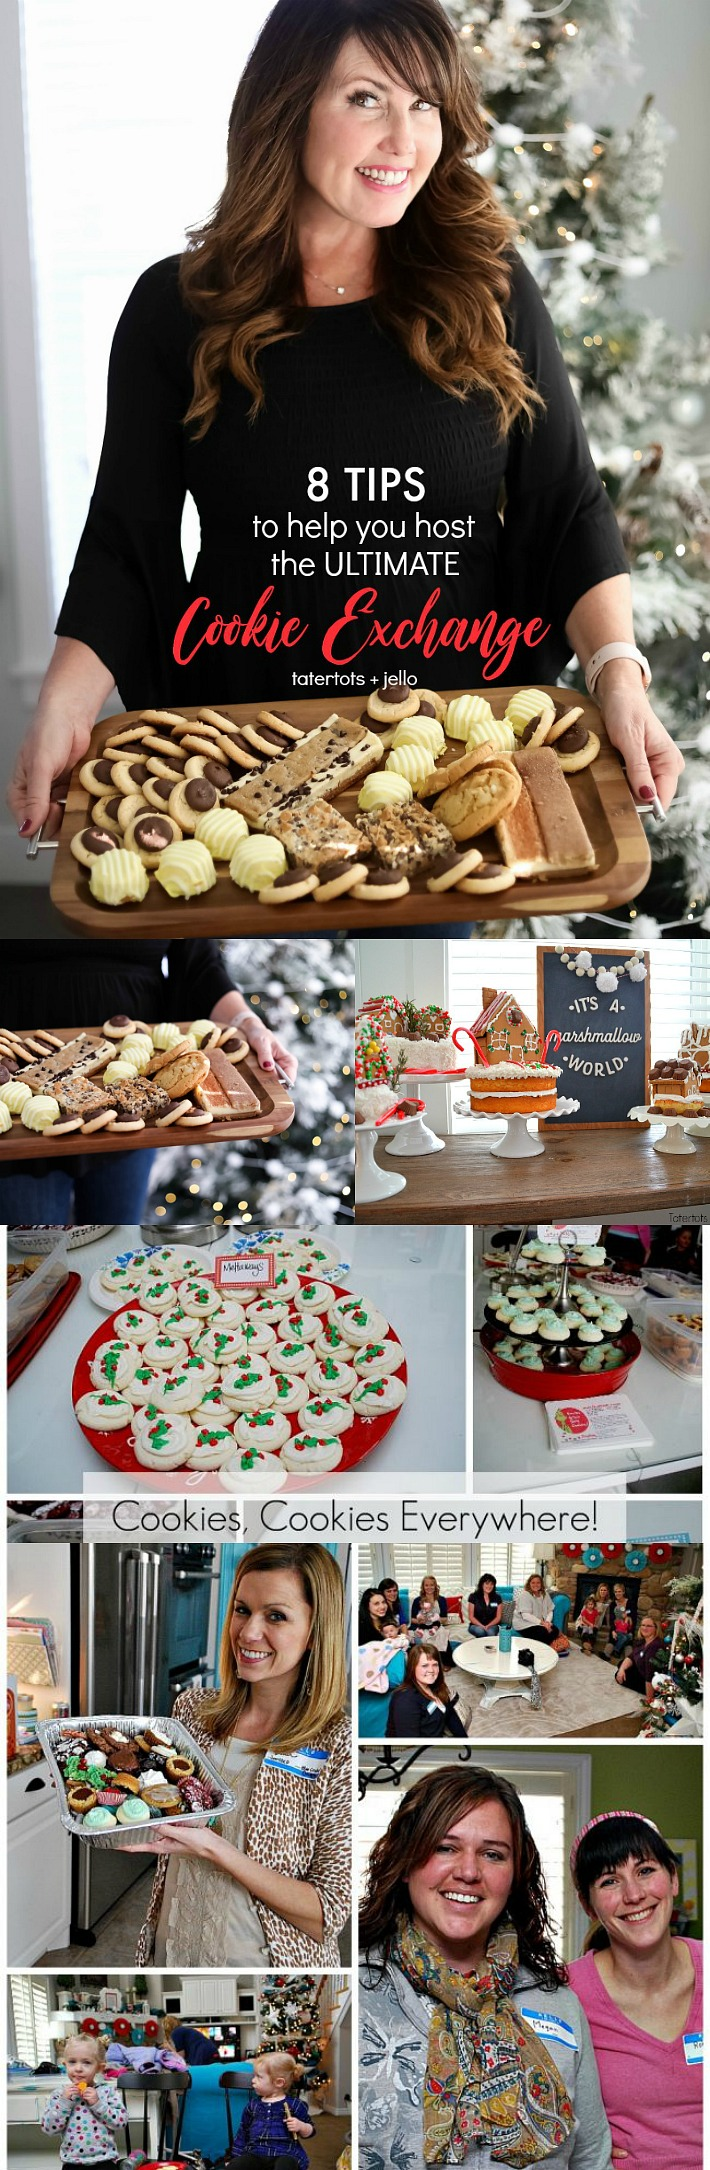 8 tips to help you throw the ultimate holiday cookie exchange party